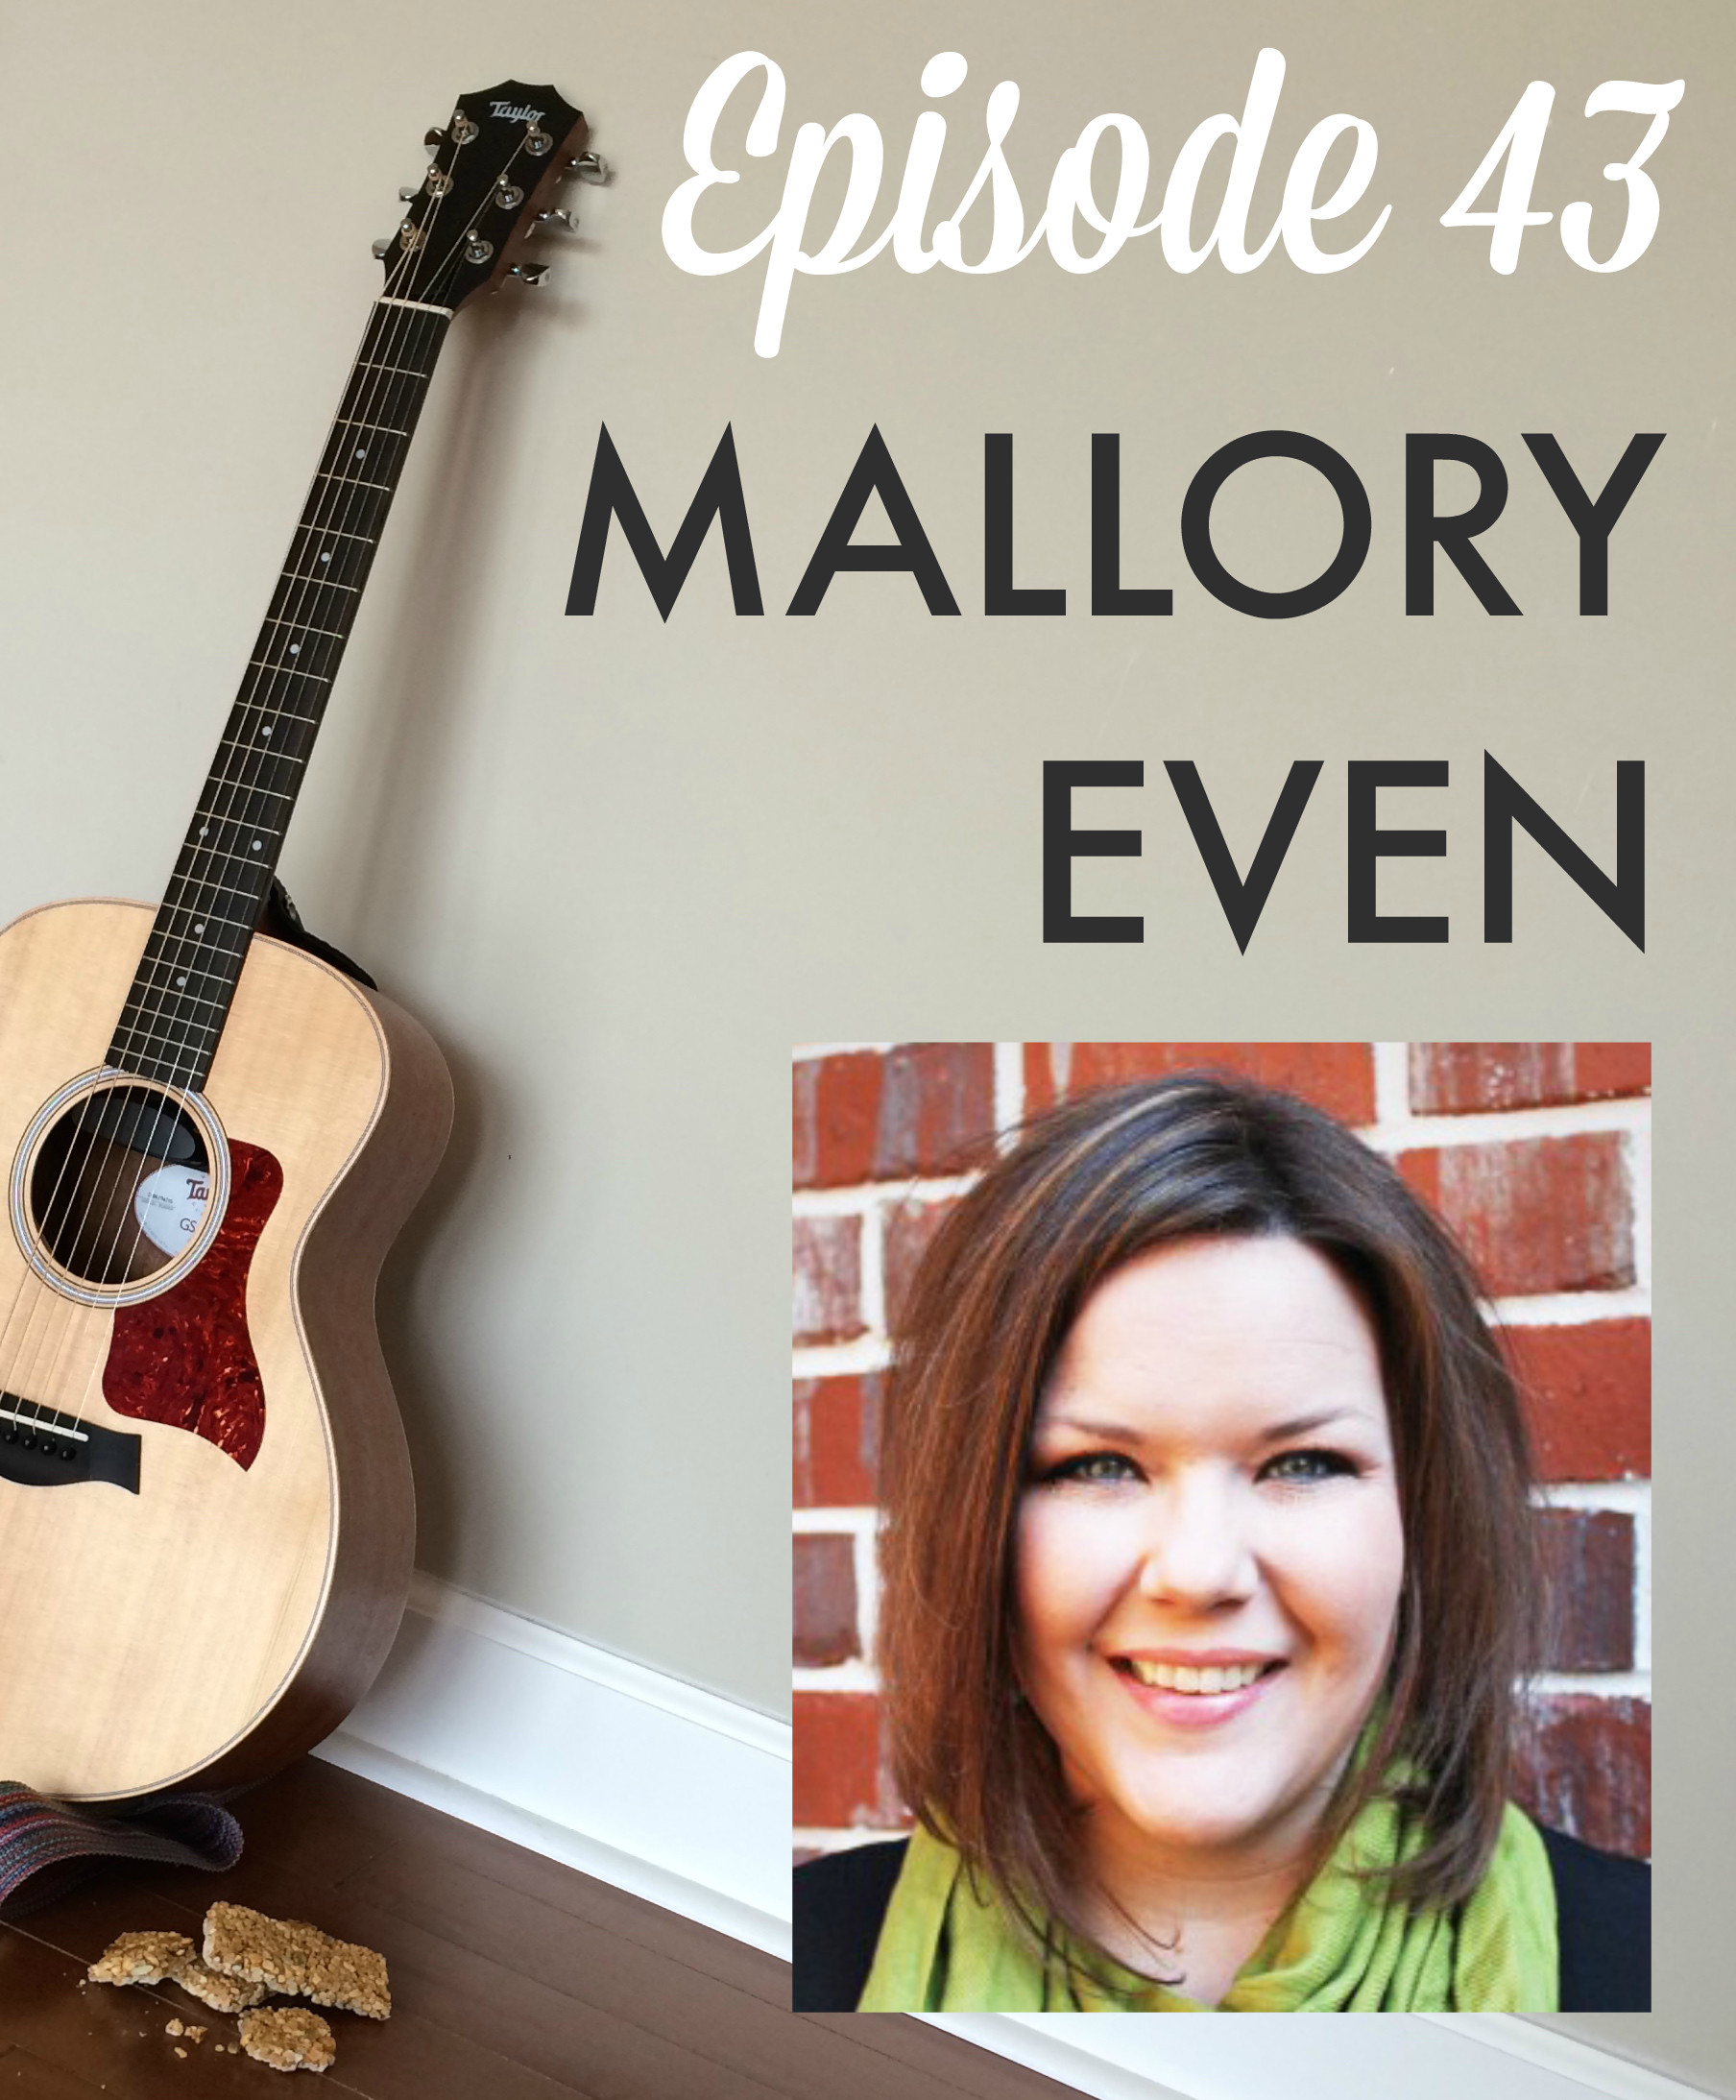 GGB Episode 43: Mallory Even